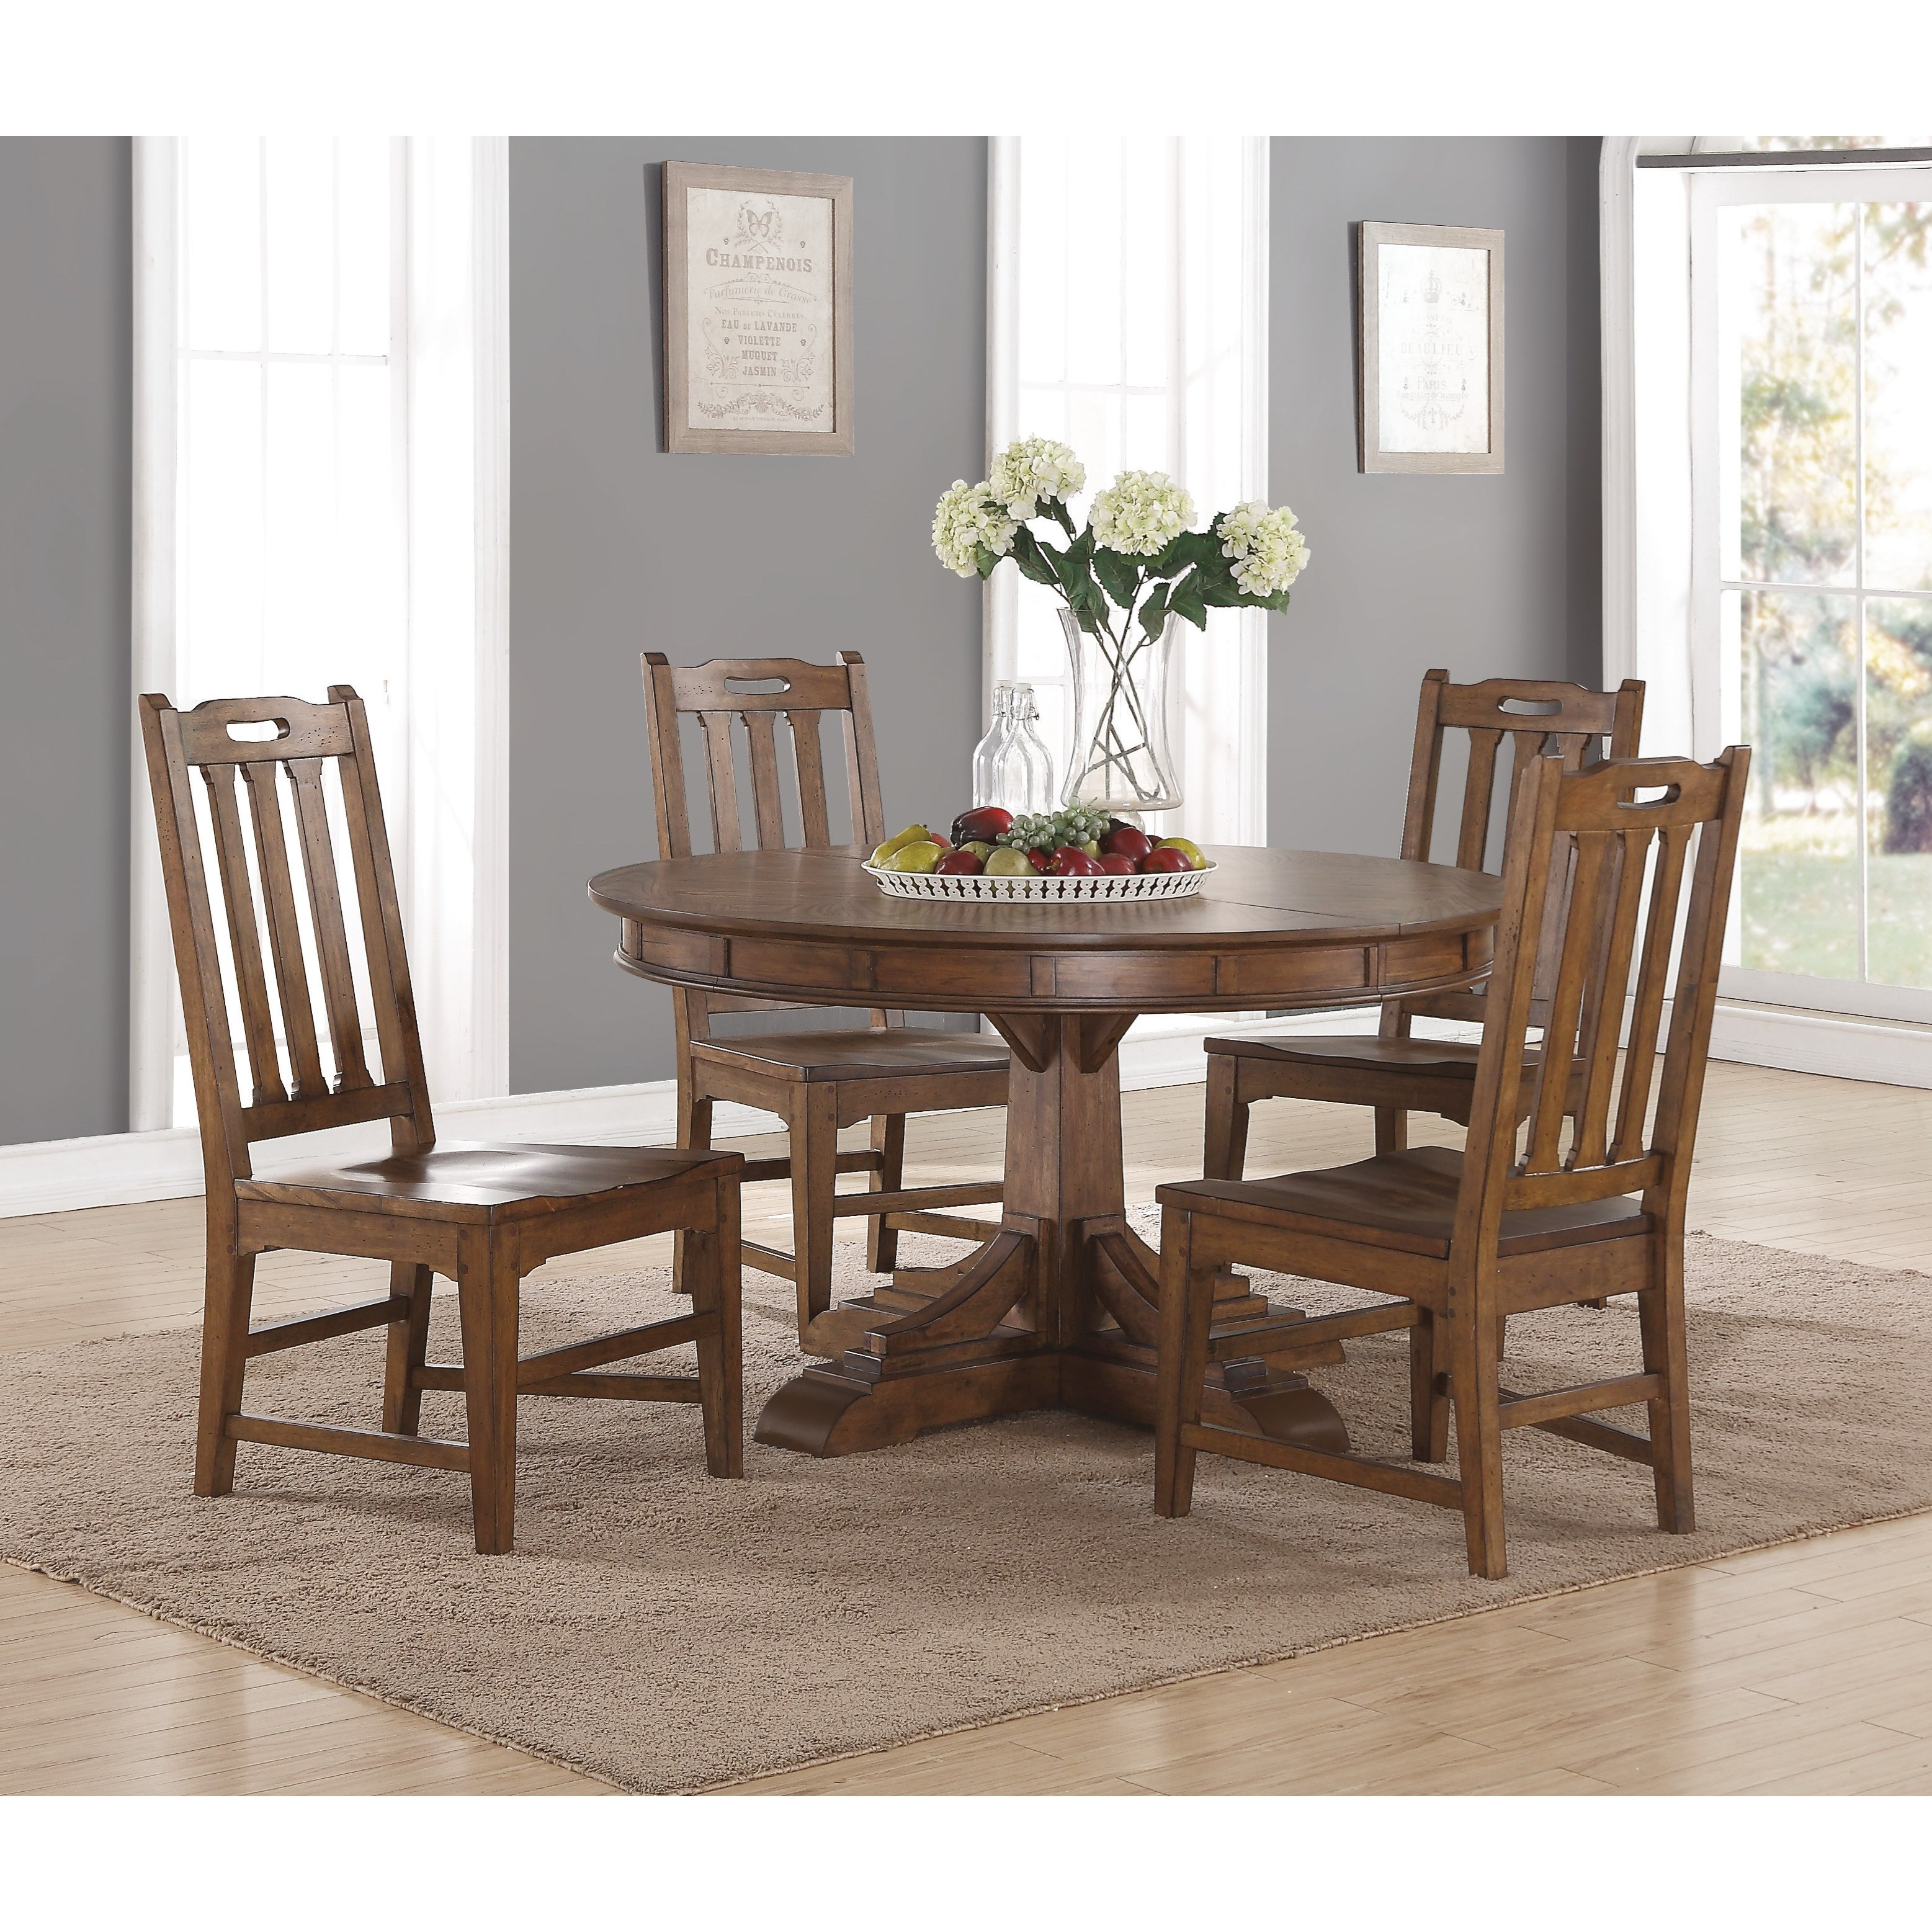 Beau Wynwood, A Flexsteel Company Sonora Mission Round Table And Chair Set With  Removable Table Leaf